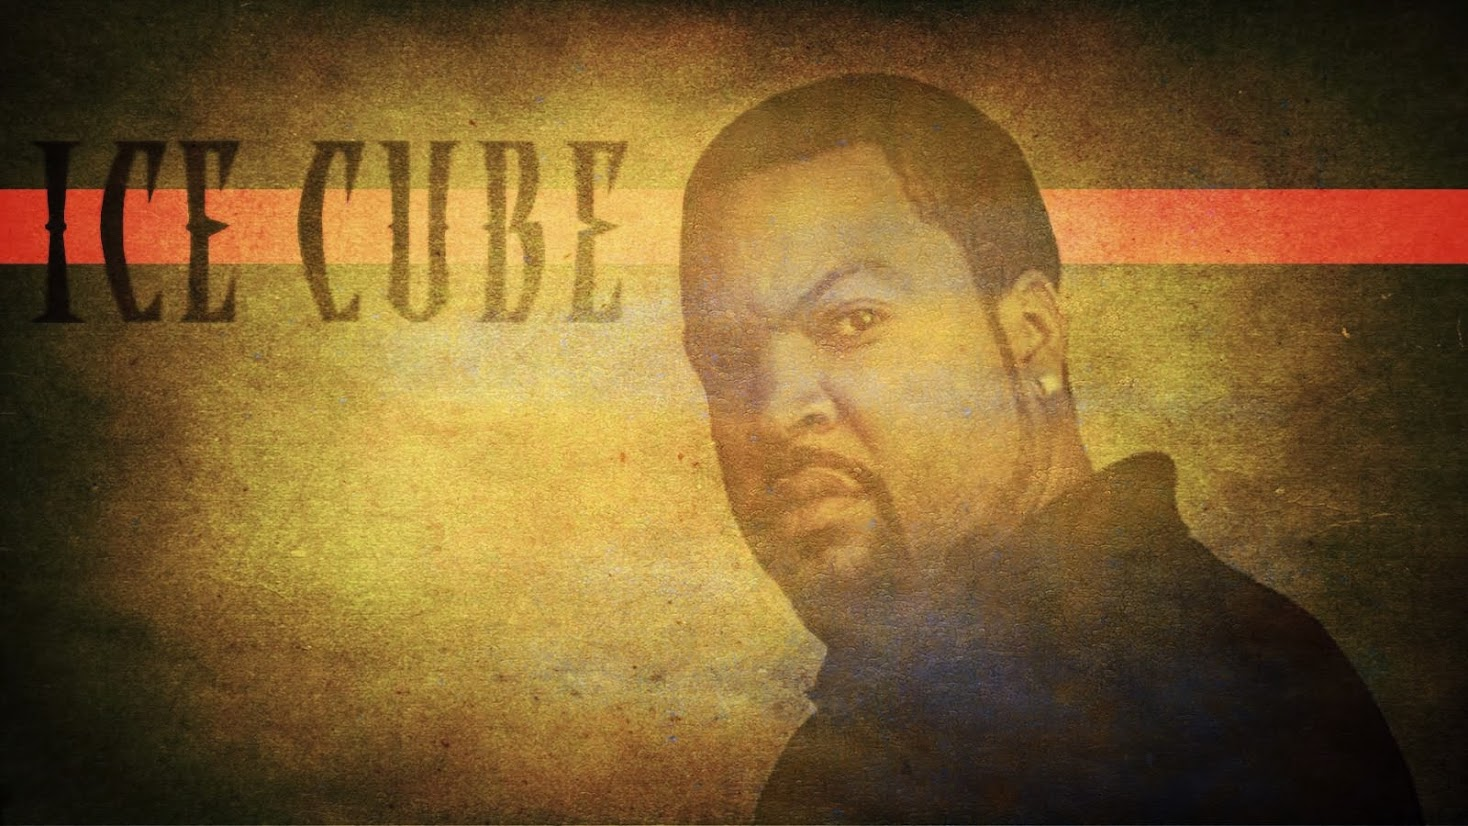 Ice Cube Movies, MusicVideos, Album MP3